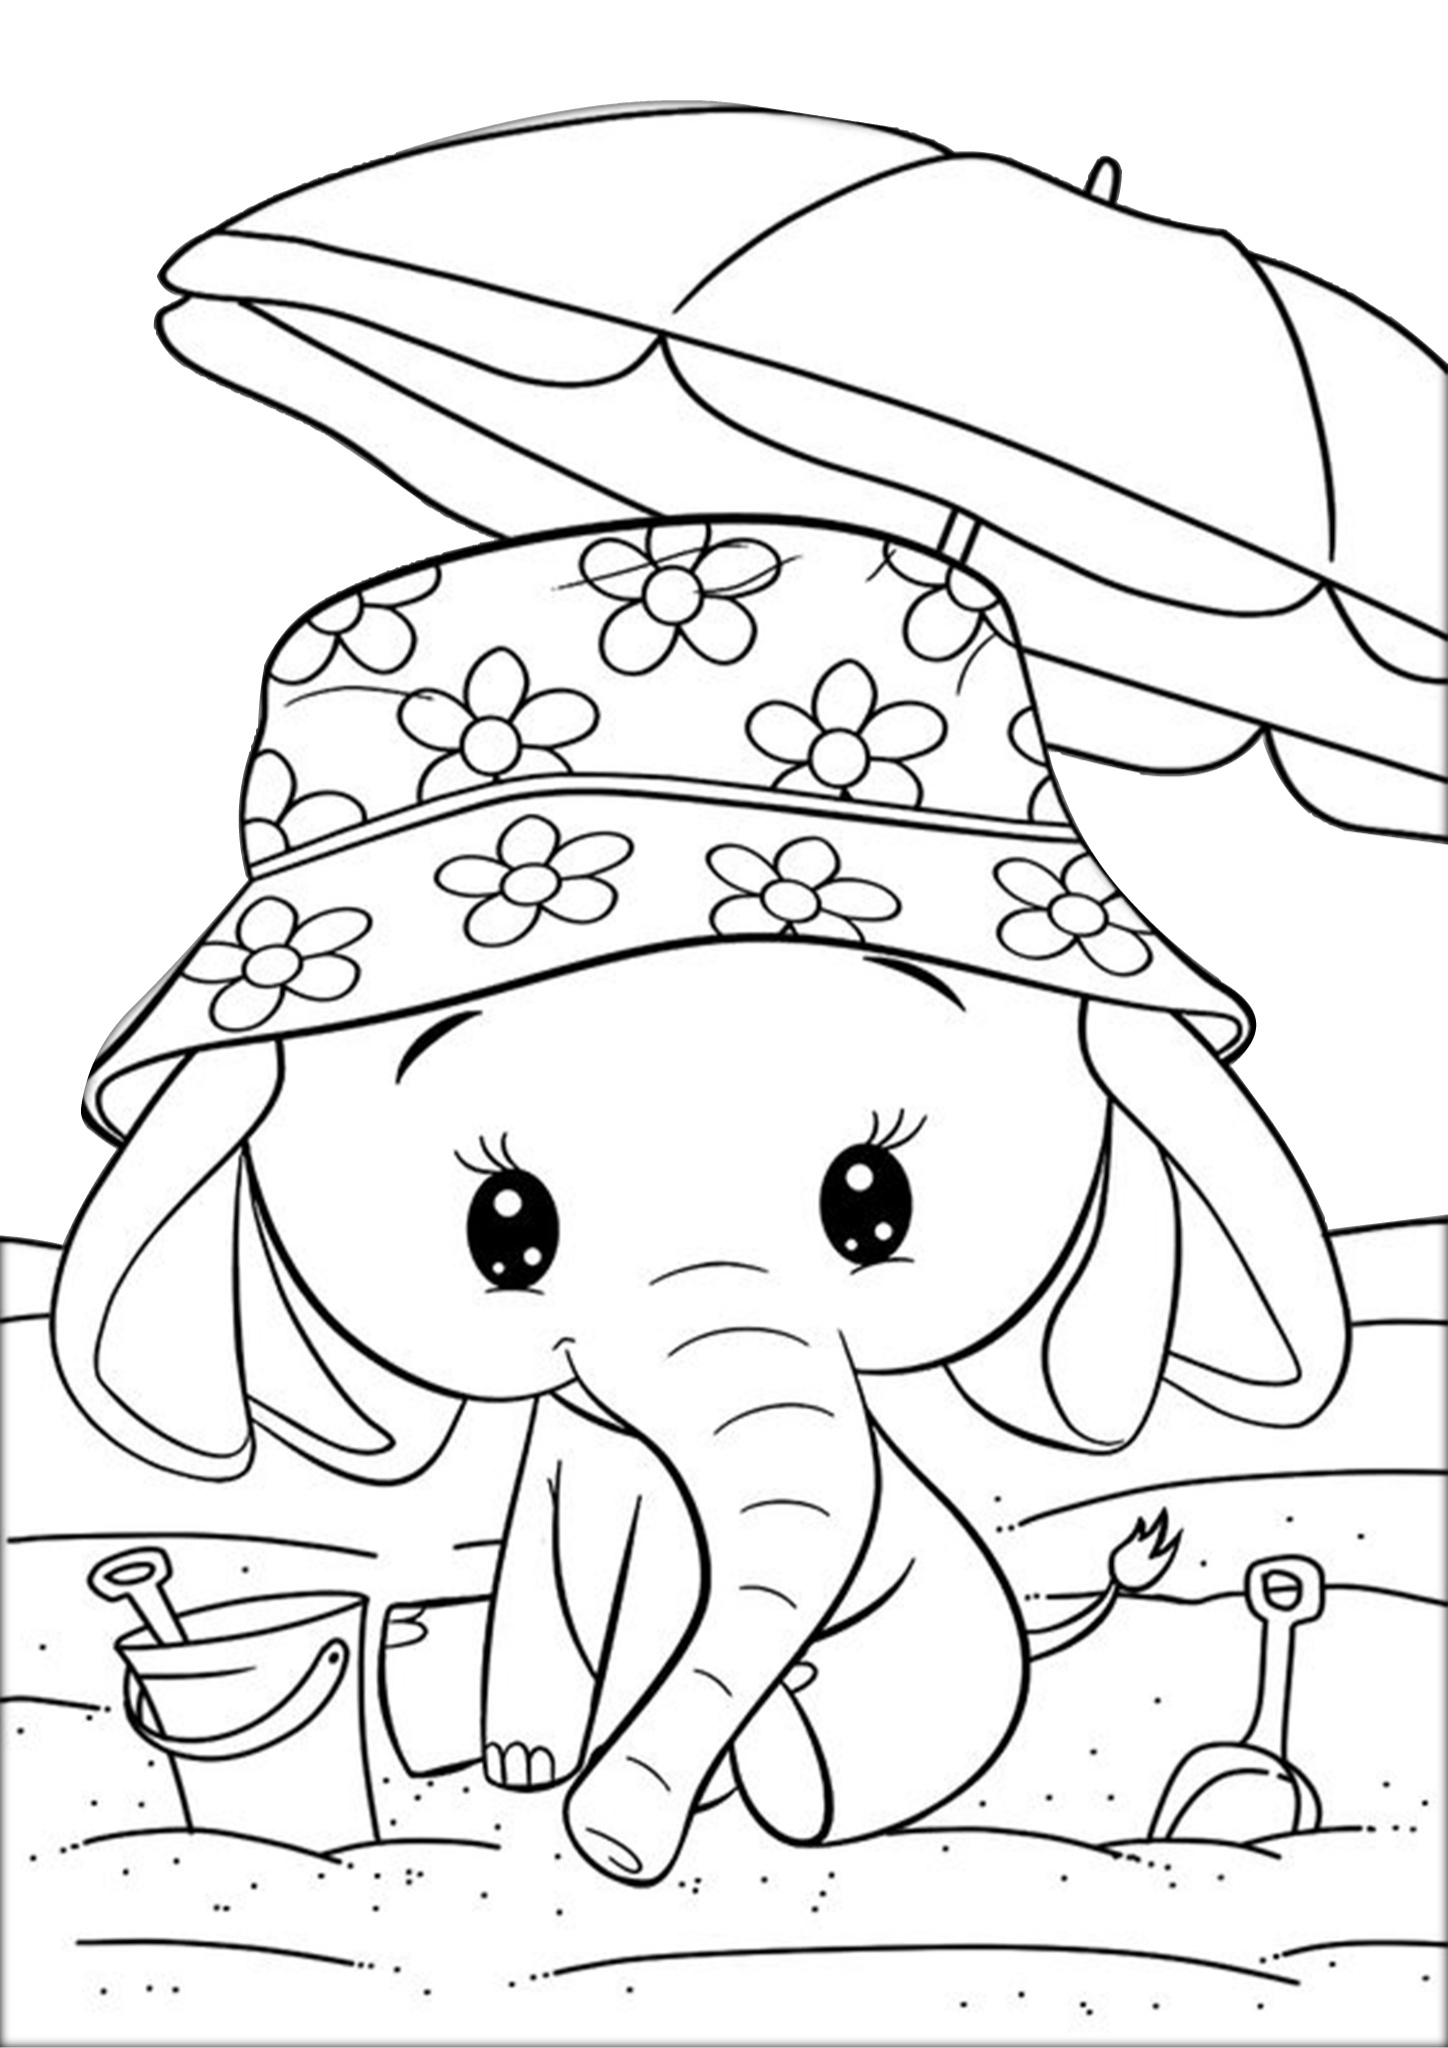 elephant coloring sheets printable very cute adorable little elephant coloring pages print printable coloring elephant sheets